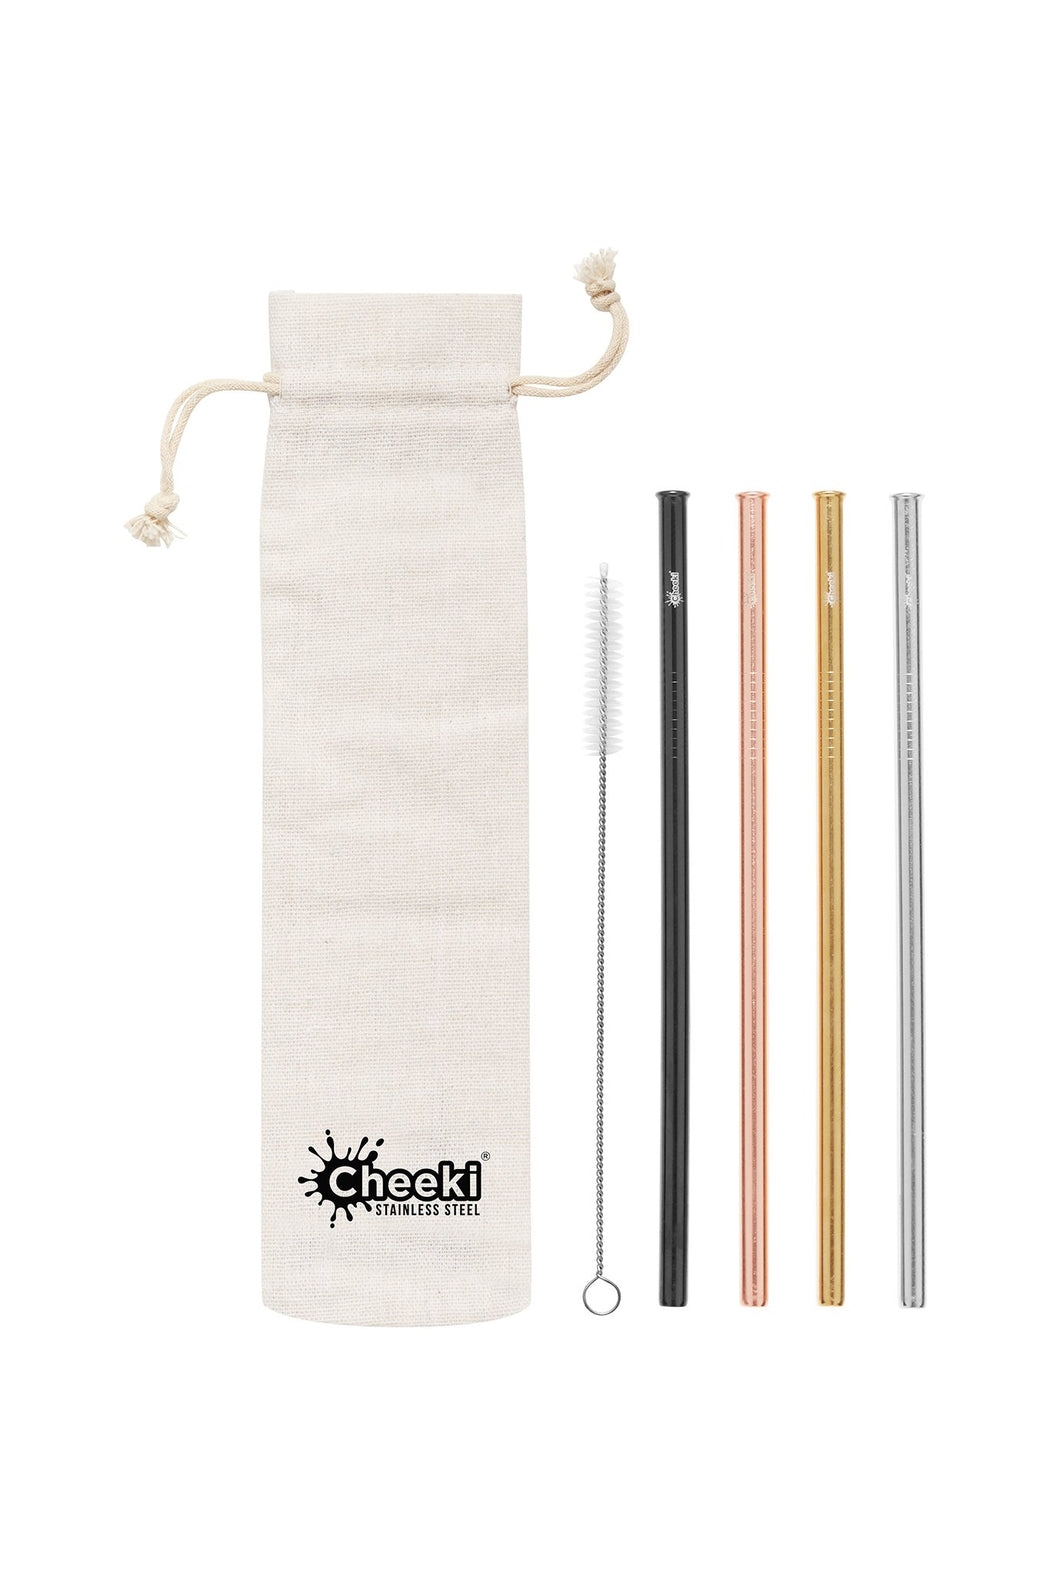 Cheeki Stainless Steel Drinking Straws 4 Pack